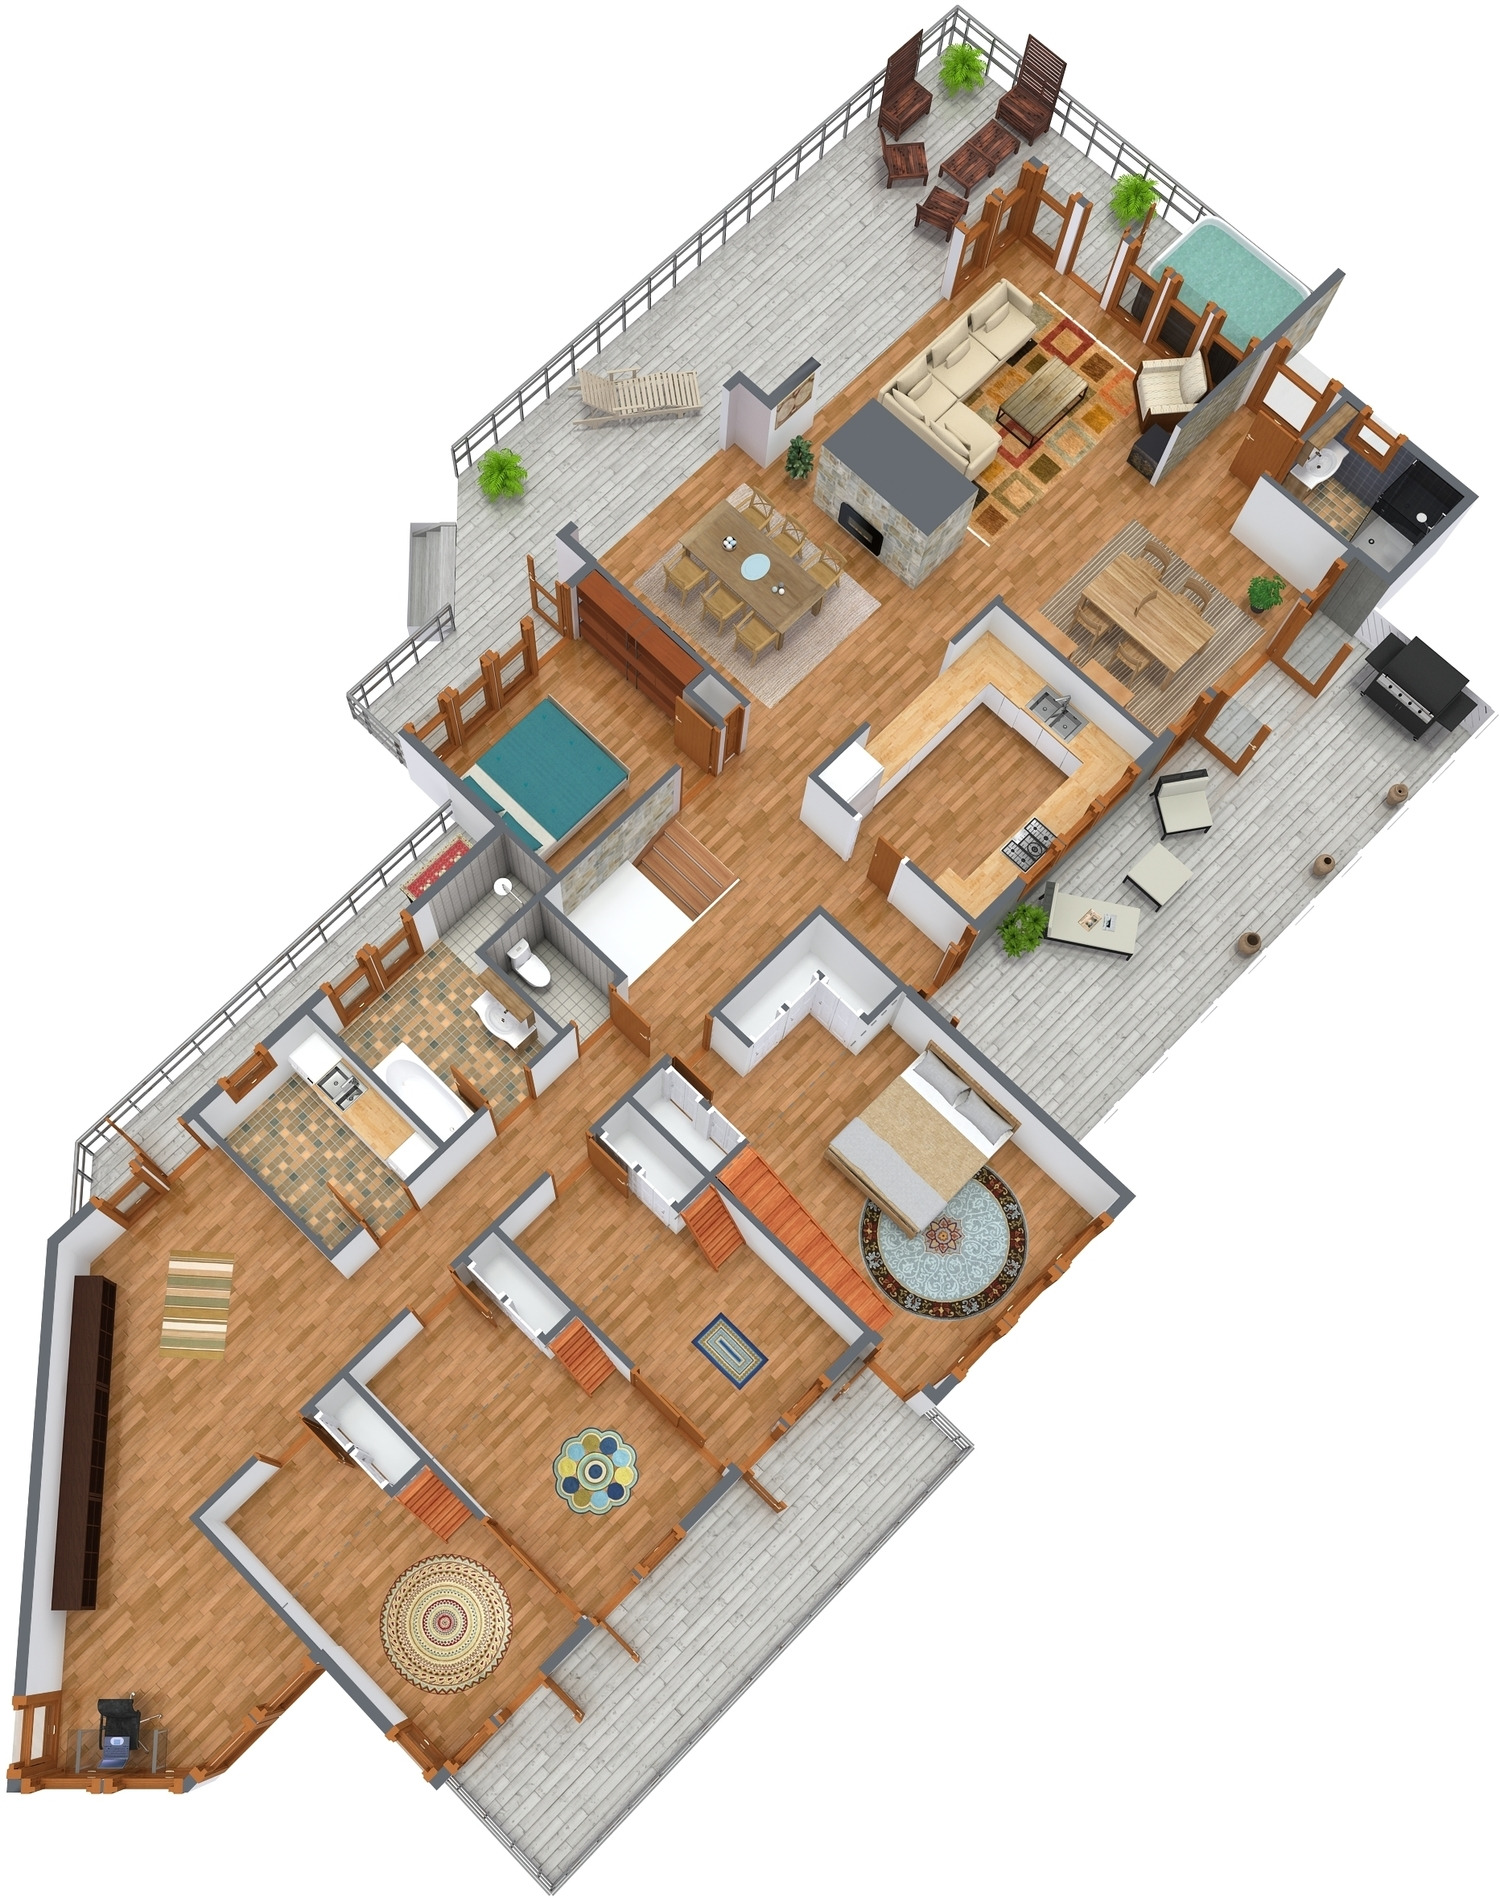 3D Floor Plan 45 degrees angled